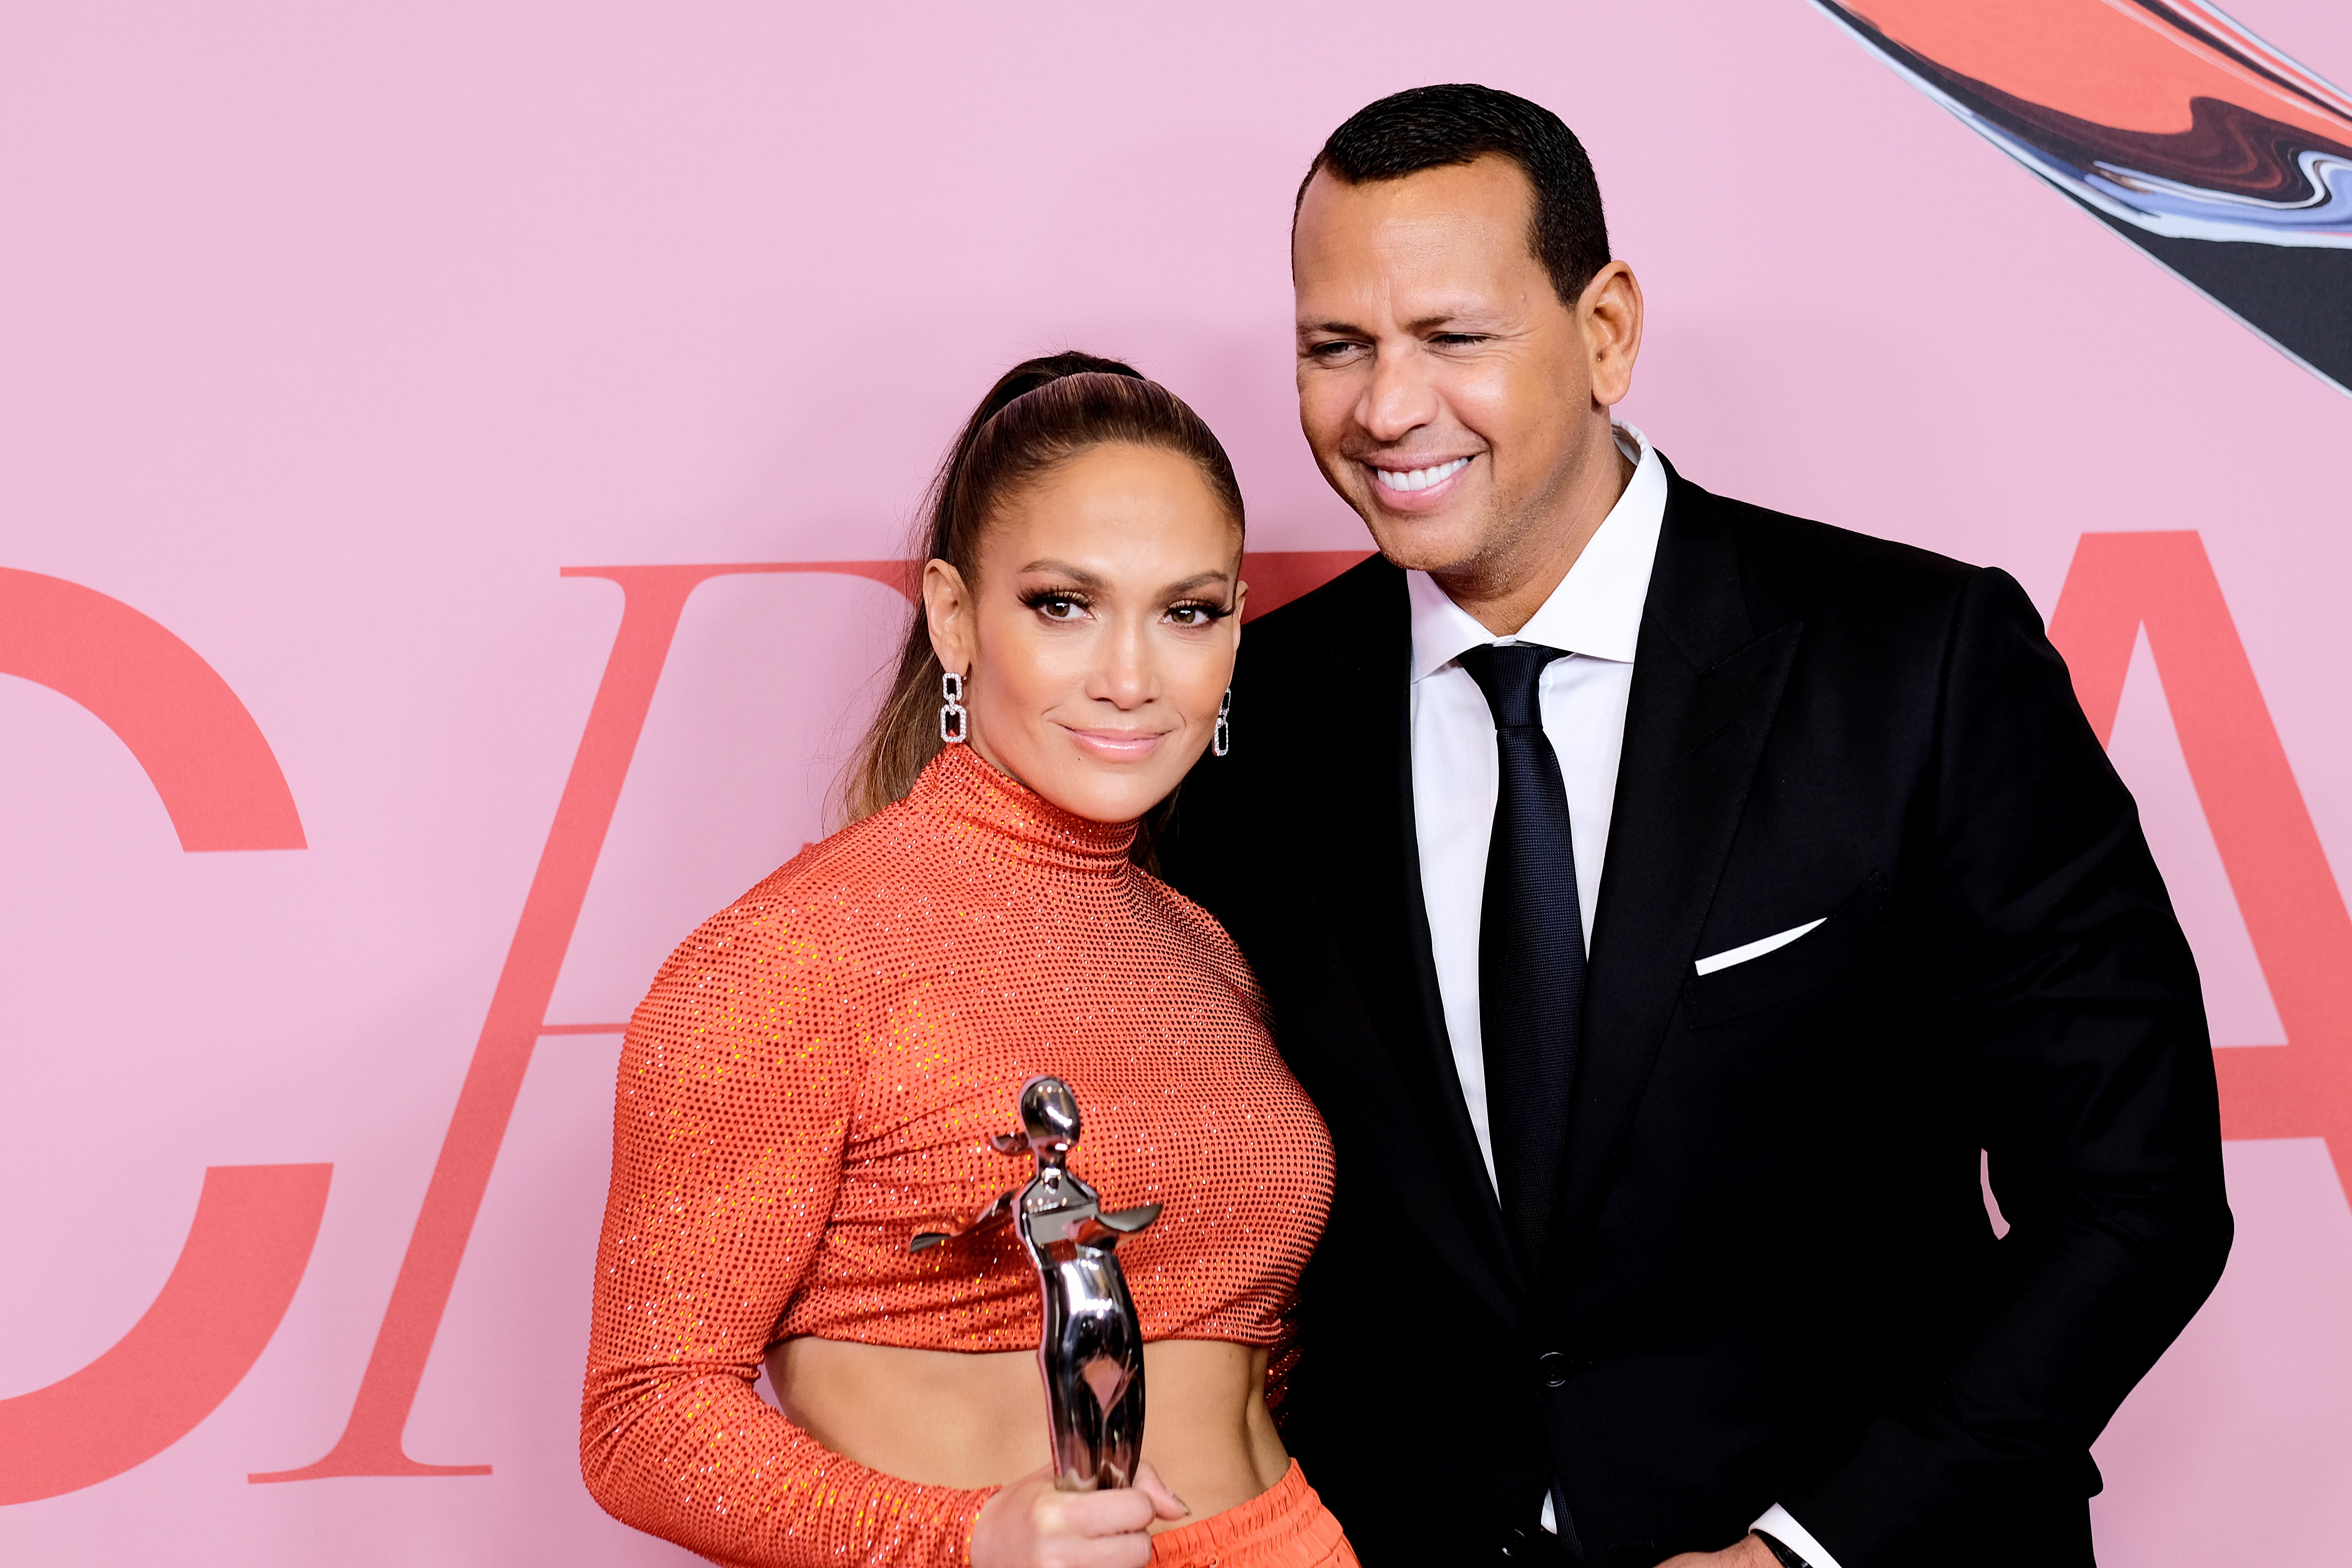 Jennifer Lopez poses with the Fashion Icon Award and Alex Rodriguez during Winners Walk during the CFDA Fashion Awards at the Brooklyn Museum of Art on June 03, 2019 in New York City | Photo: Getty Images